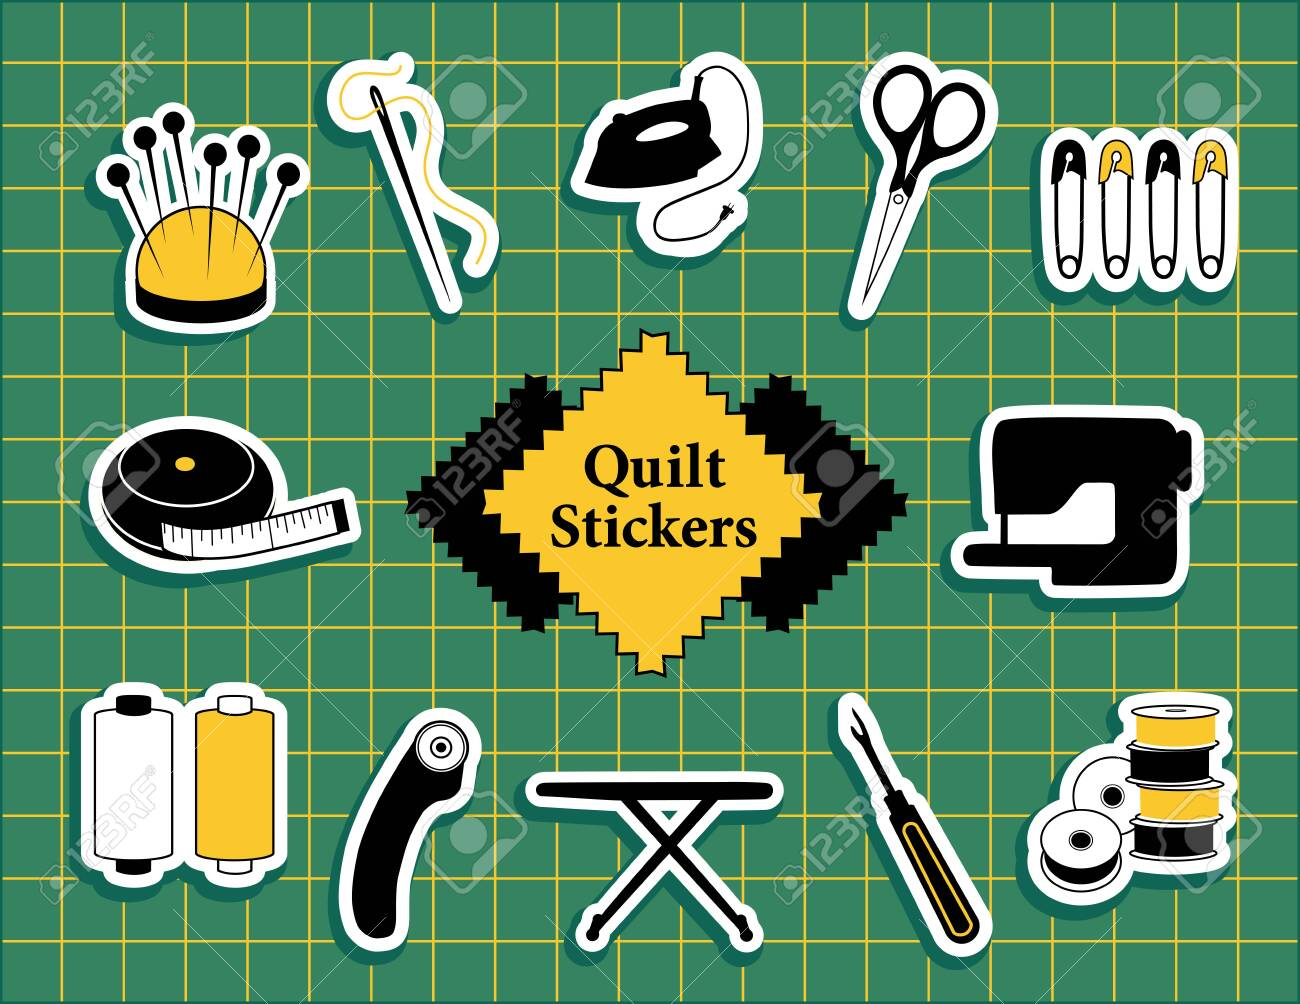 Quilt, patchwork, do it yourself sewing icons - 113931826